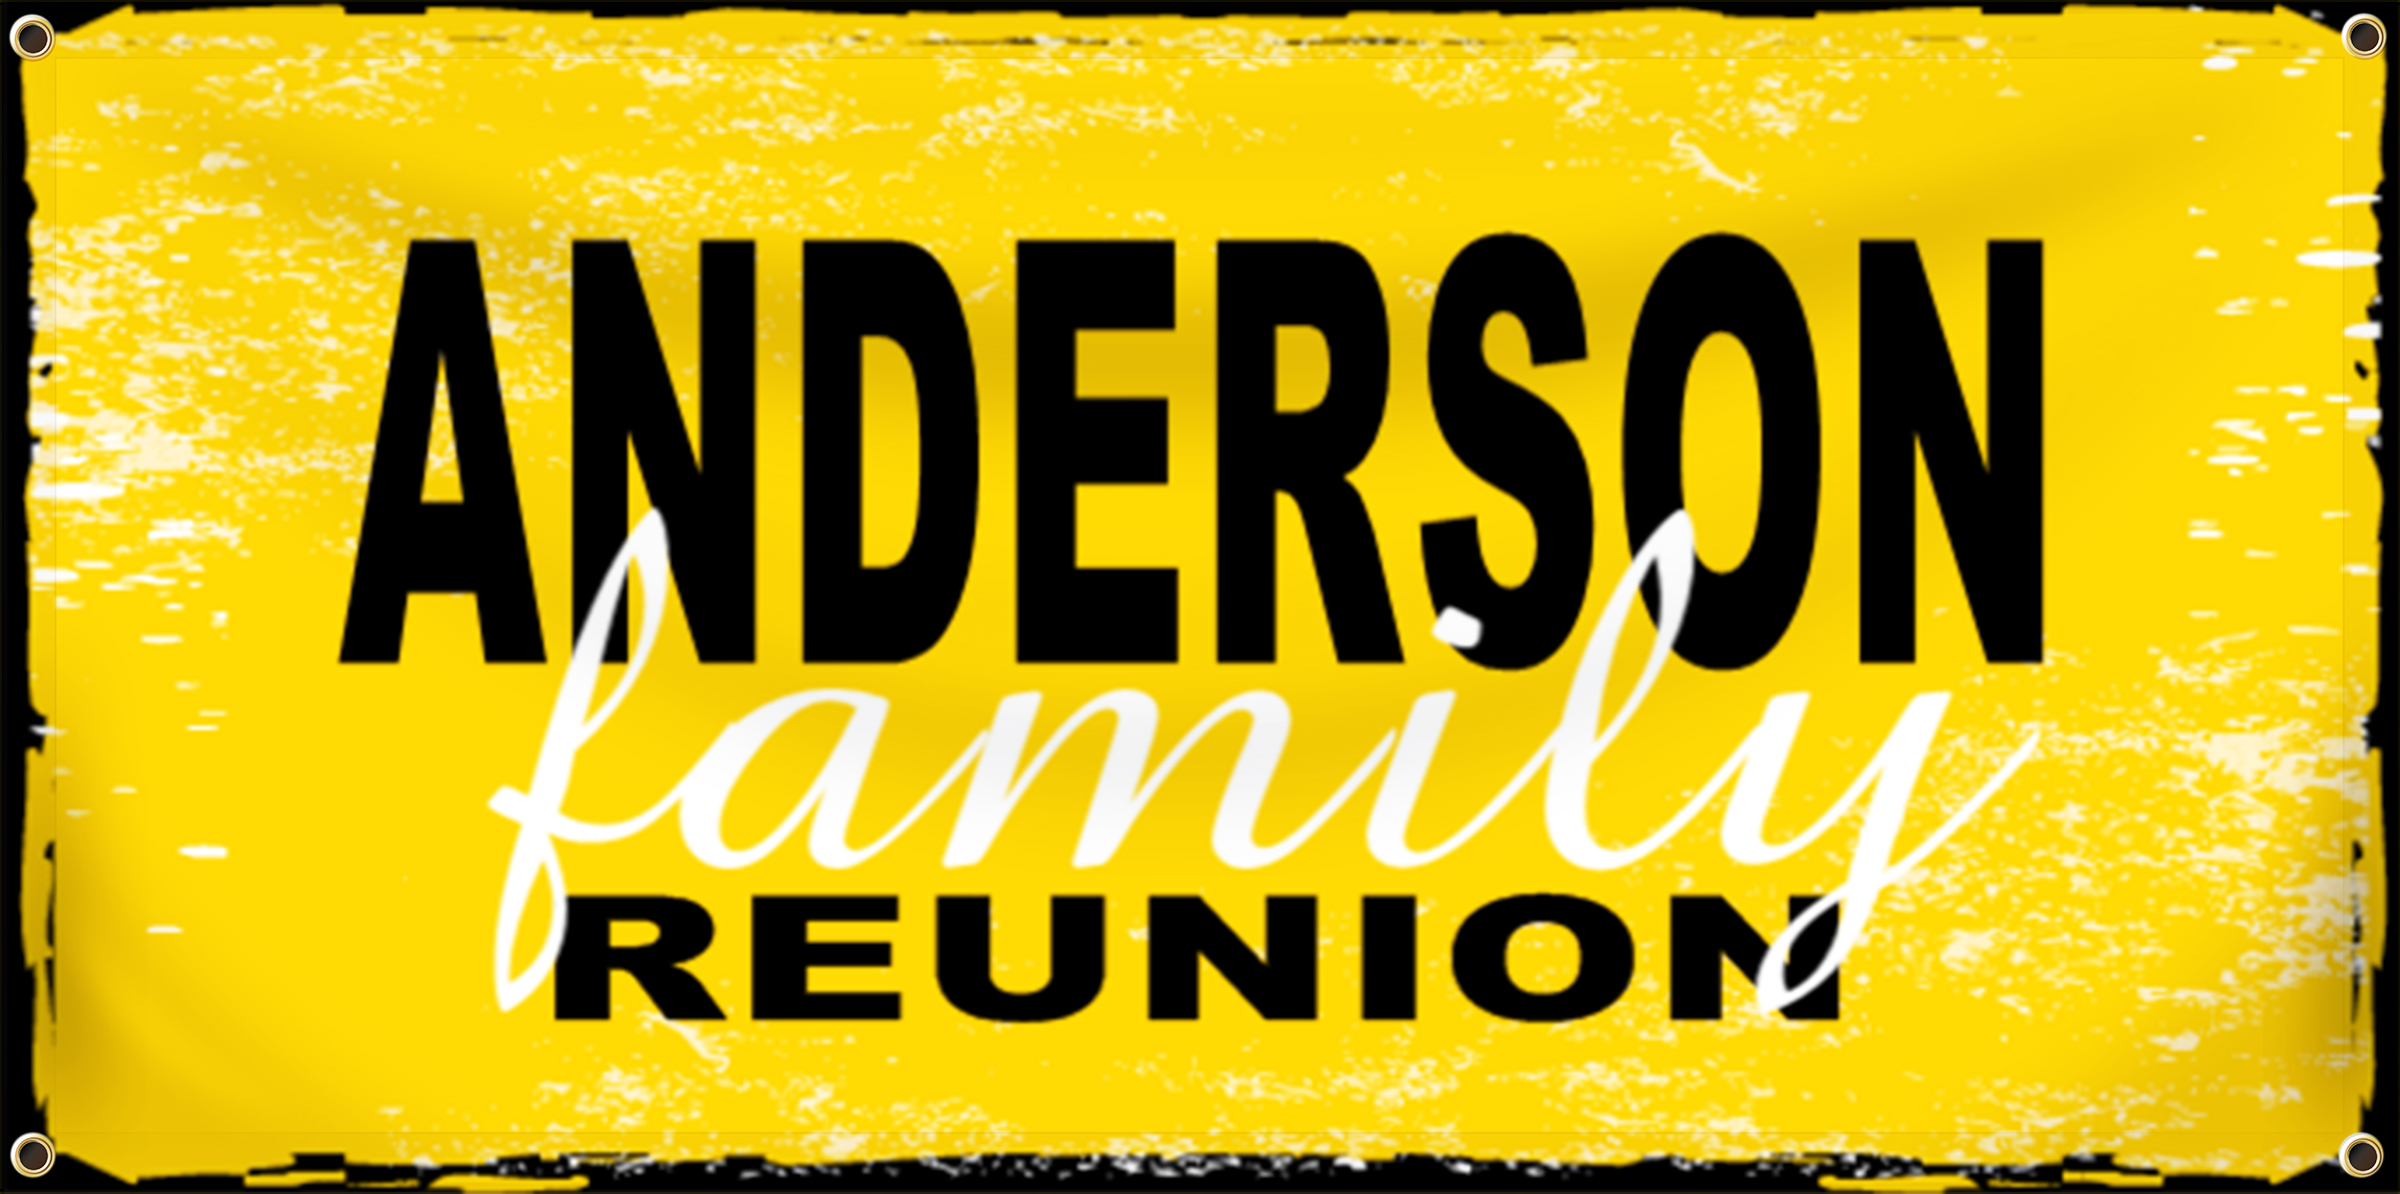 Family Reunion Banner Idea | LawnSigns.com